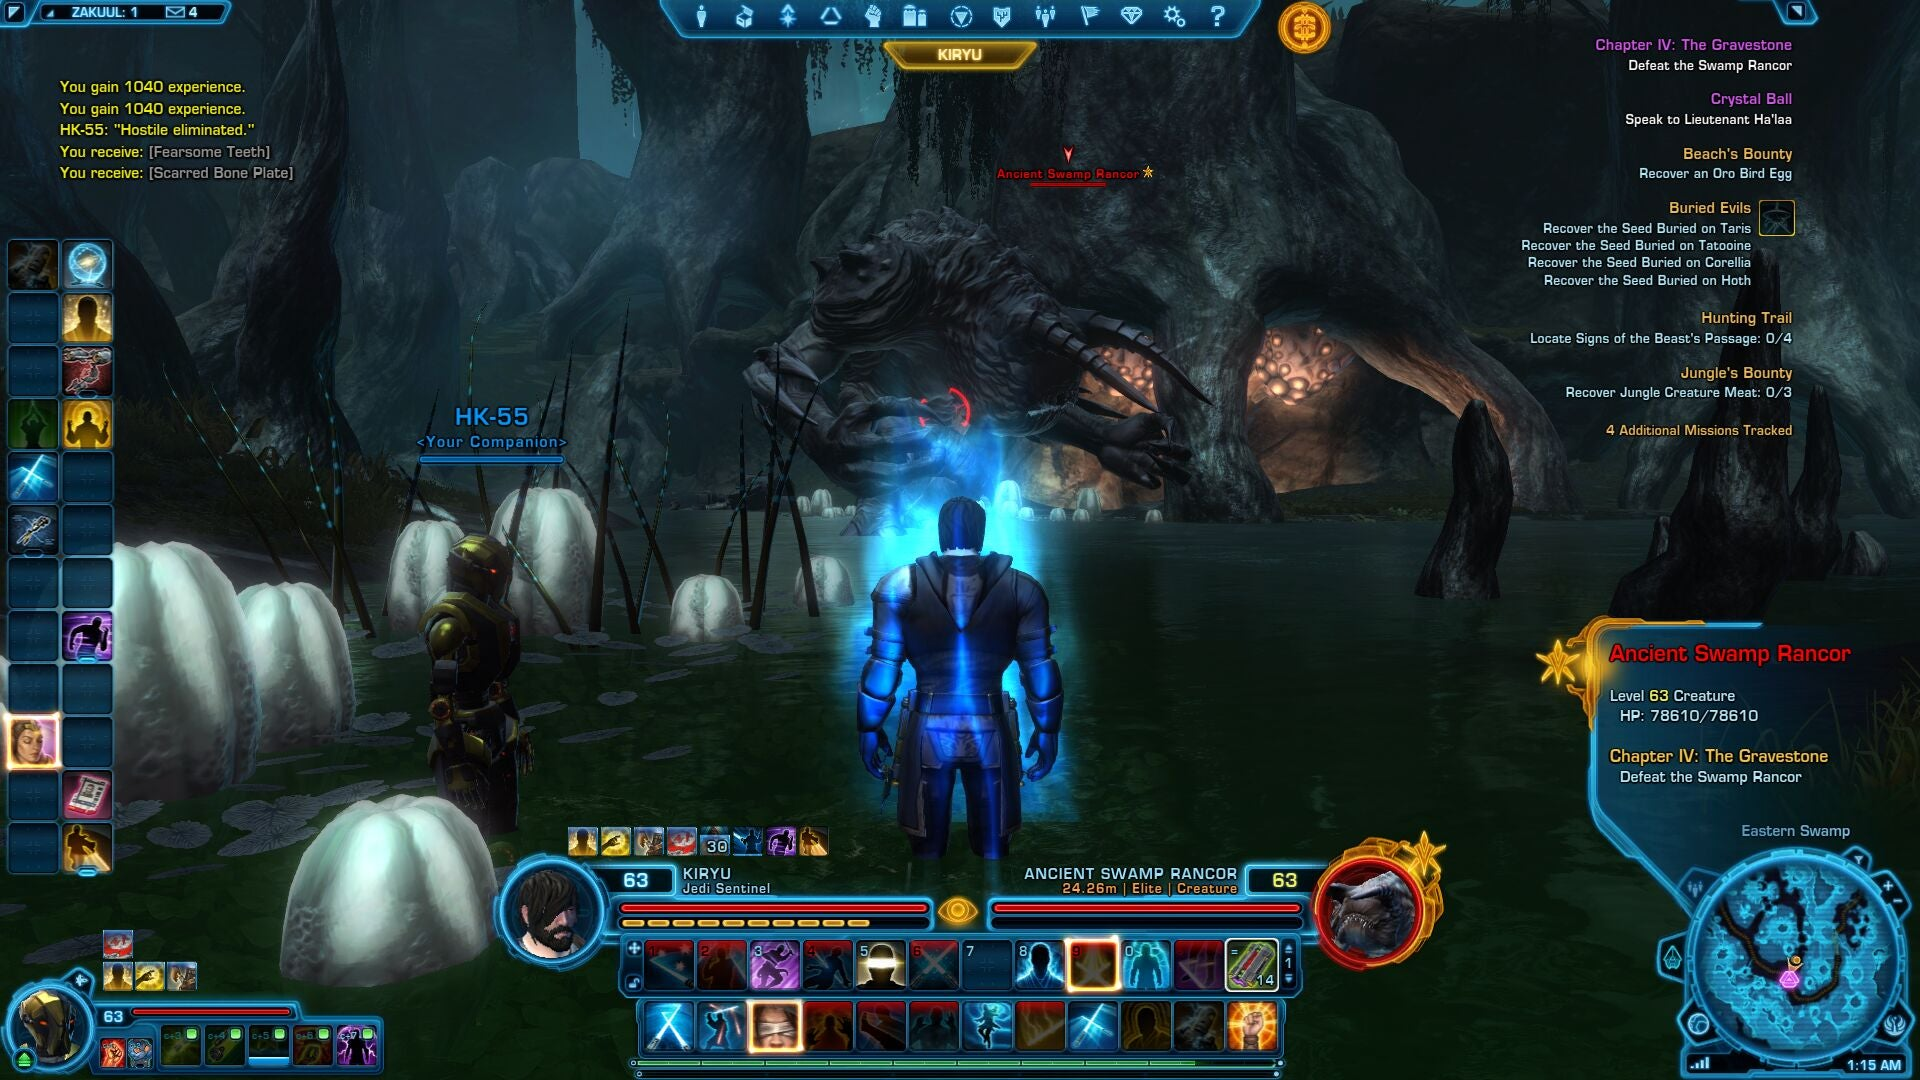 Star Wars: The Old Republic Now Feels More Like A Classic BioWare RPG